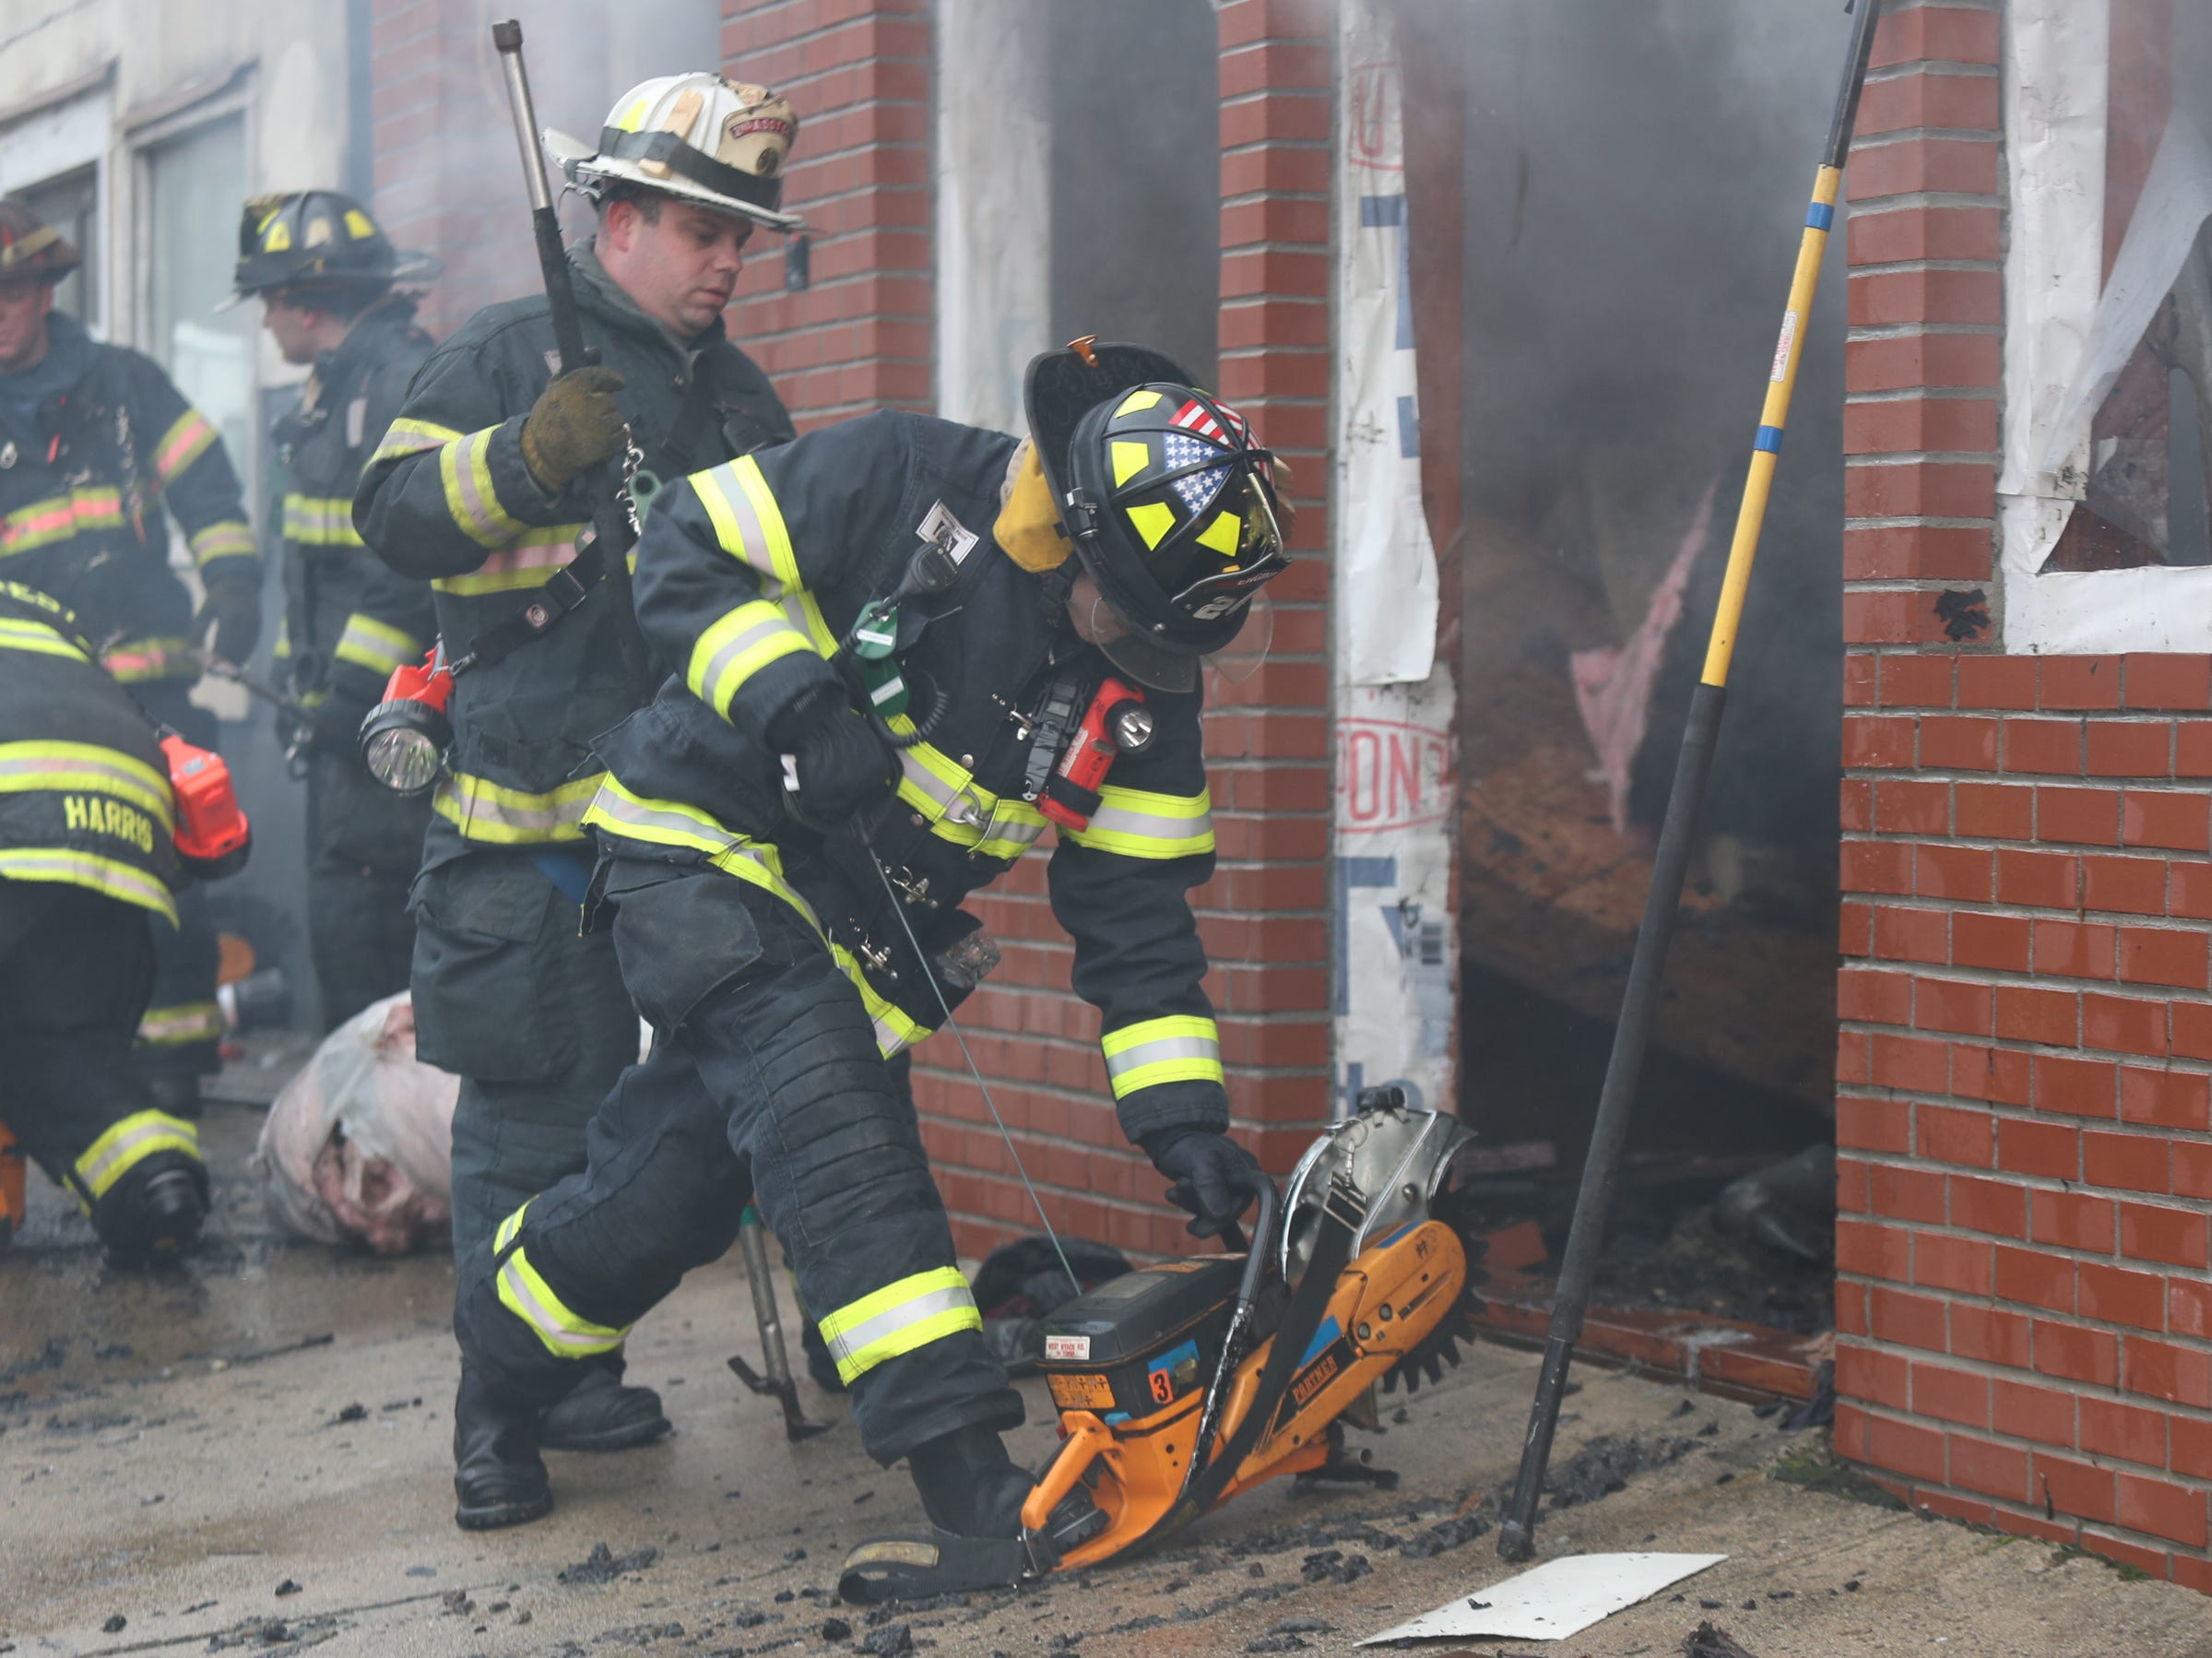 Fire departments from Spring Valley, Nanuet, Hillcrest, Tallman, West Nyack and Sloatsburg work to extinguish a fire at 30 Lawrence St. in Spring Valley on Thursday, January 17, 2019.